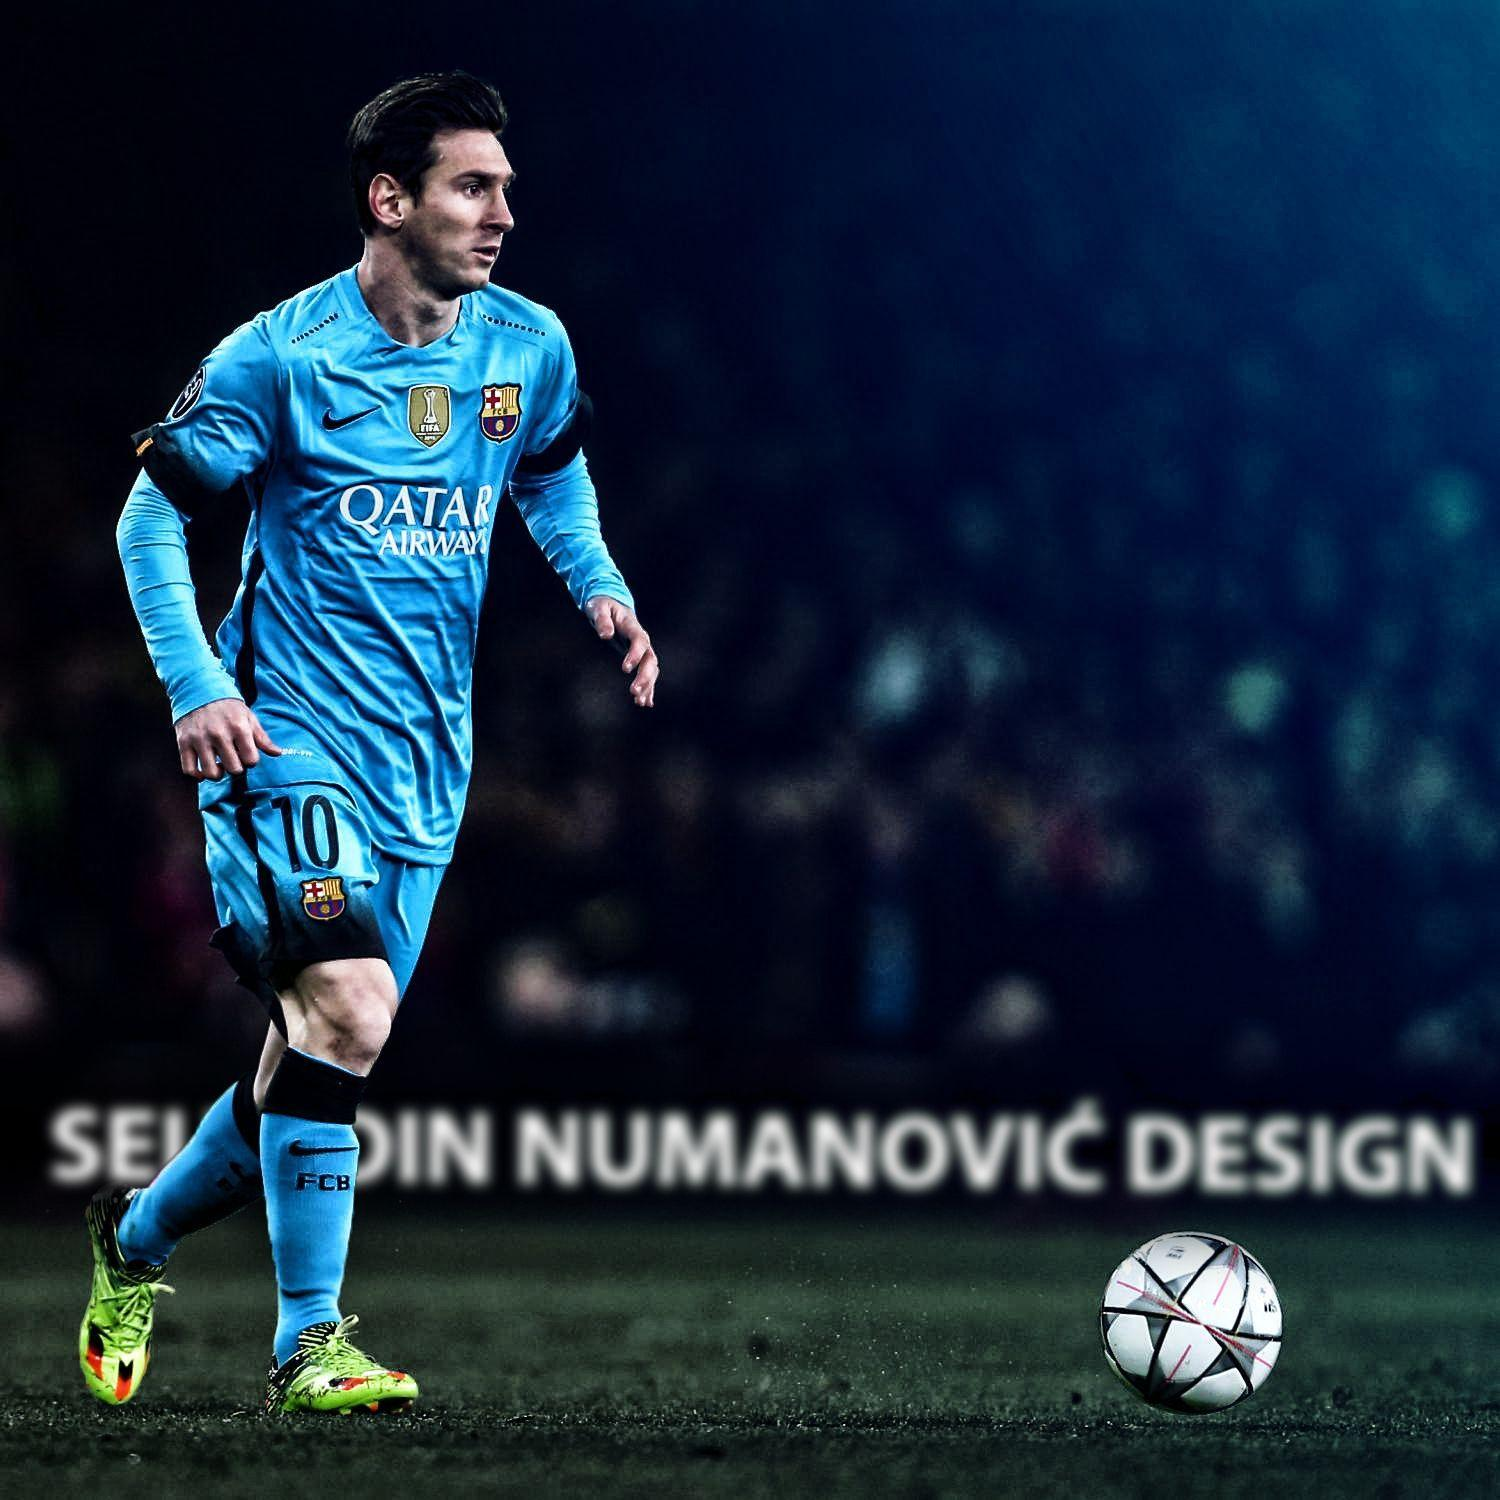 Wallpaper Of Messi: Lionel Messi Wallpapers 2016